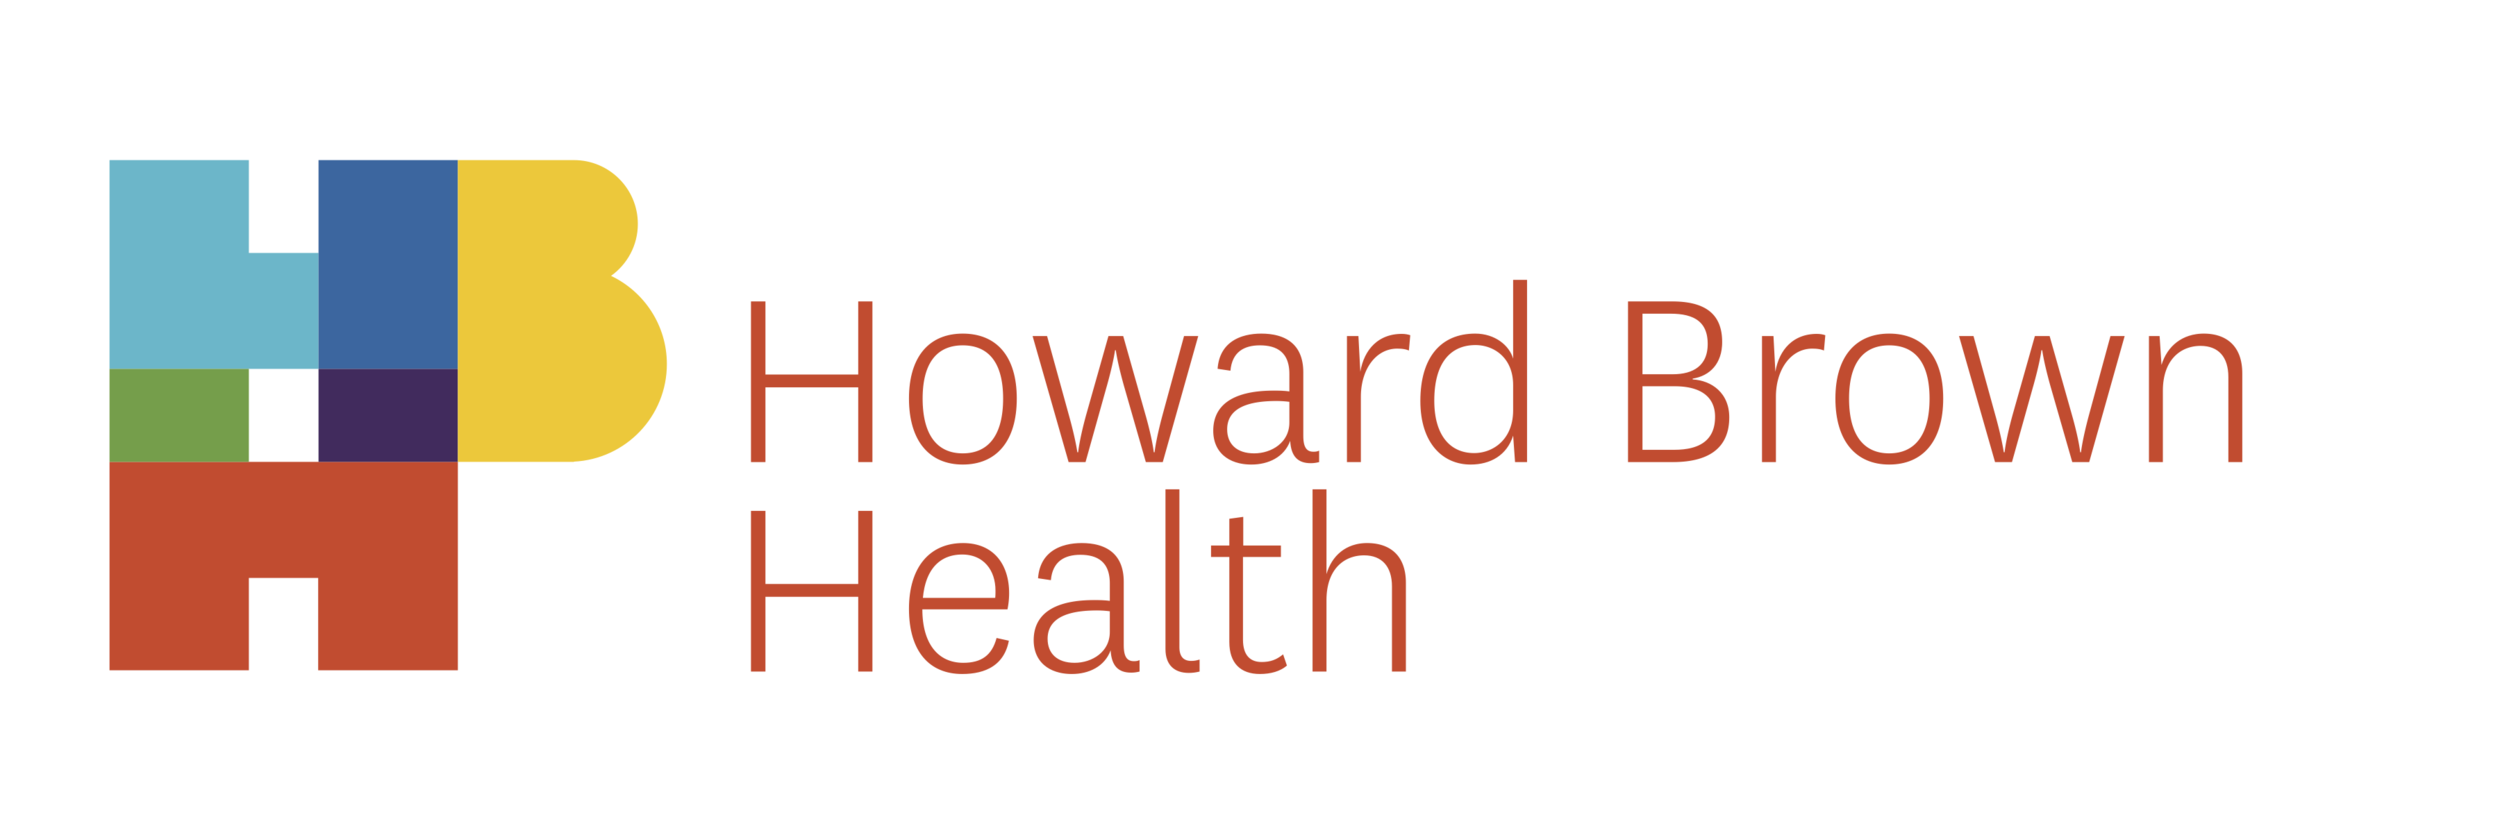 Howard Brown Health.png